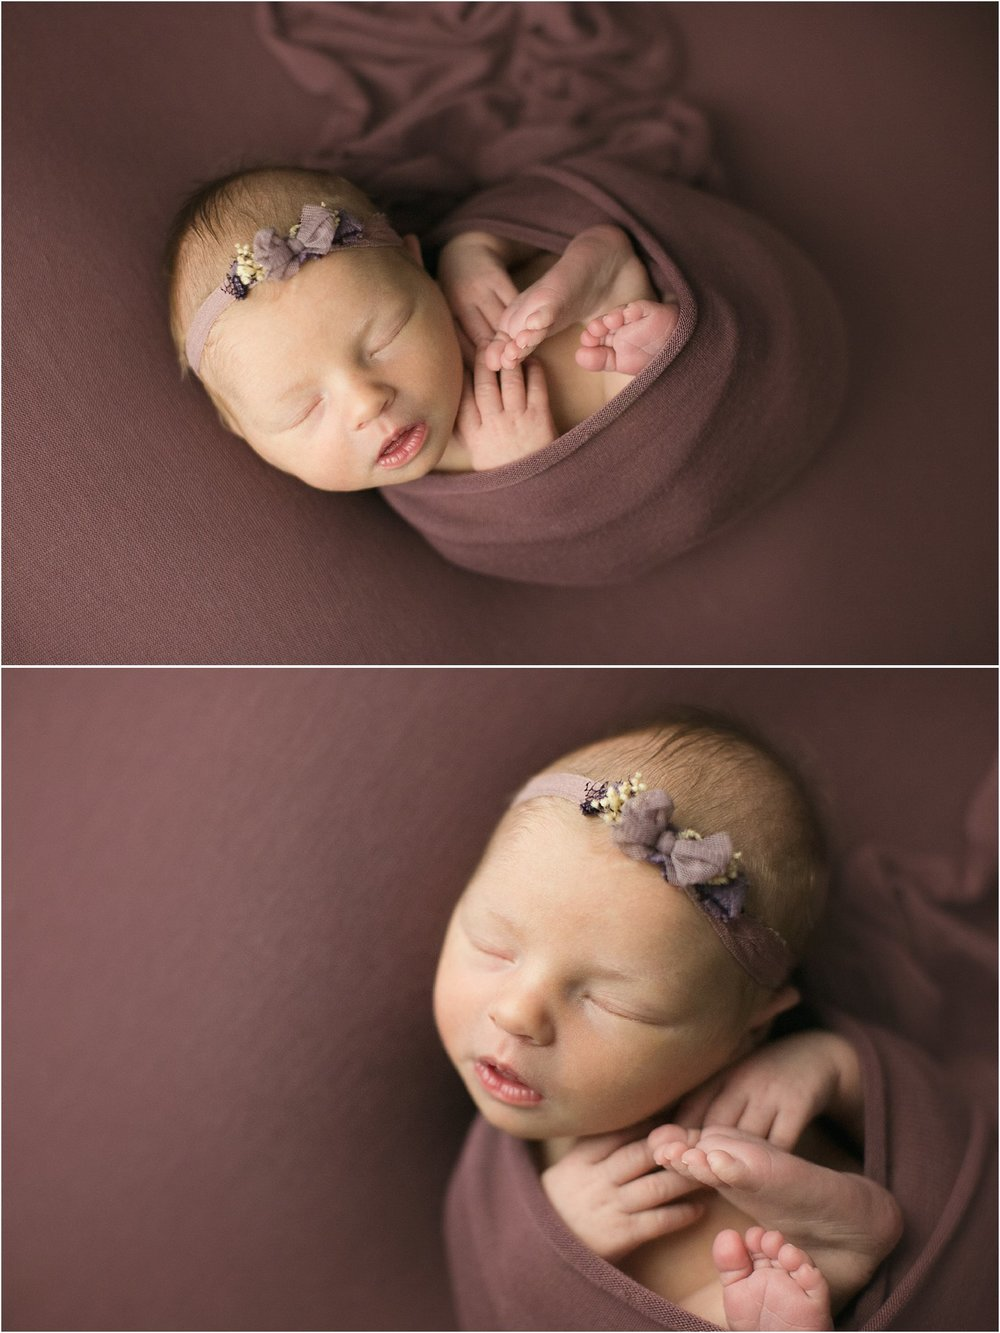 newborn girl wrapped in purple with purple floral bow headband